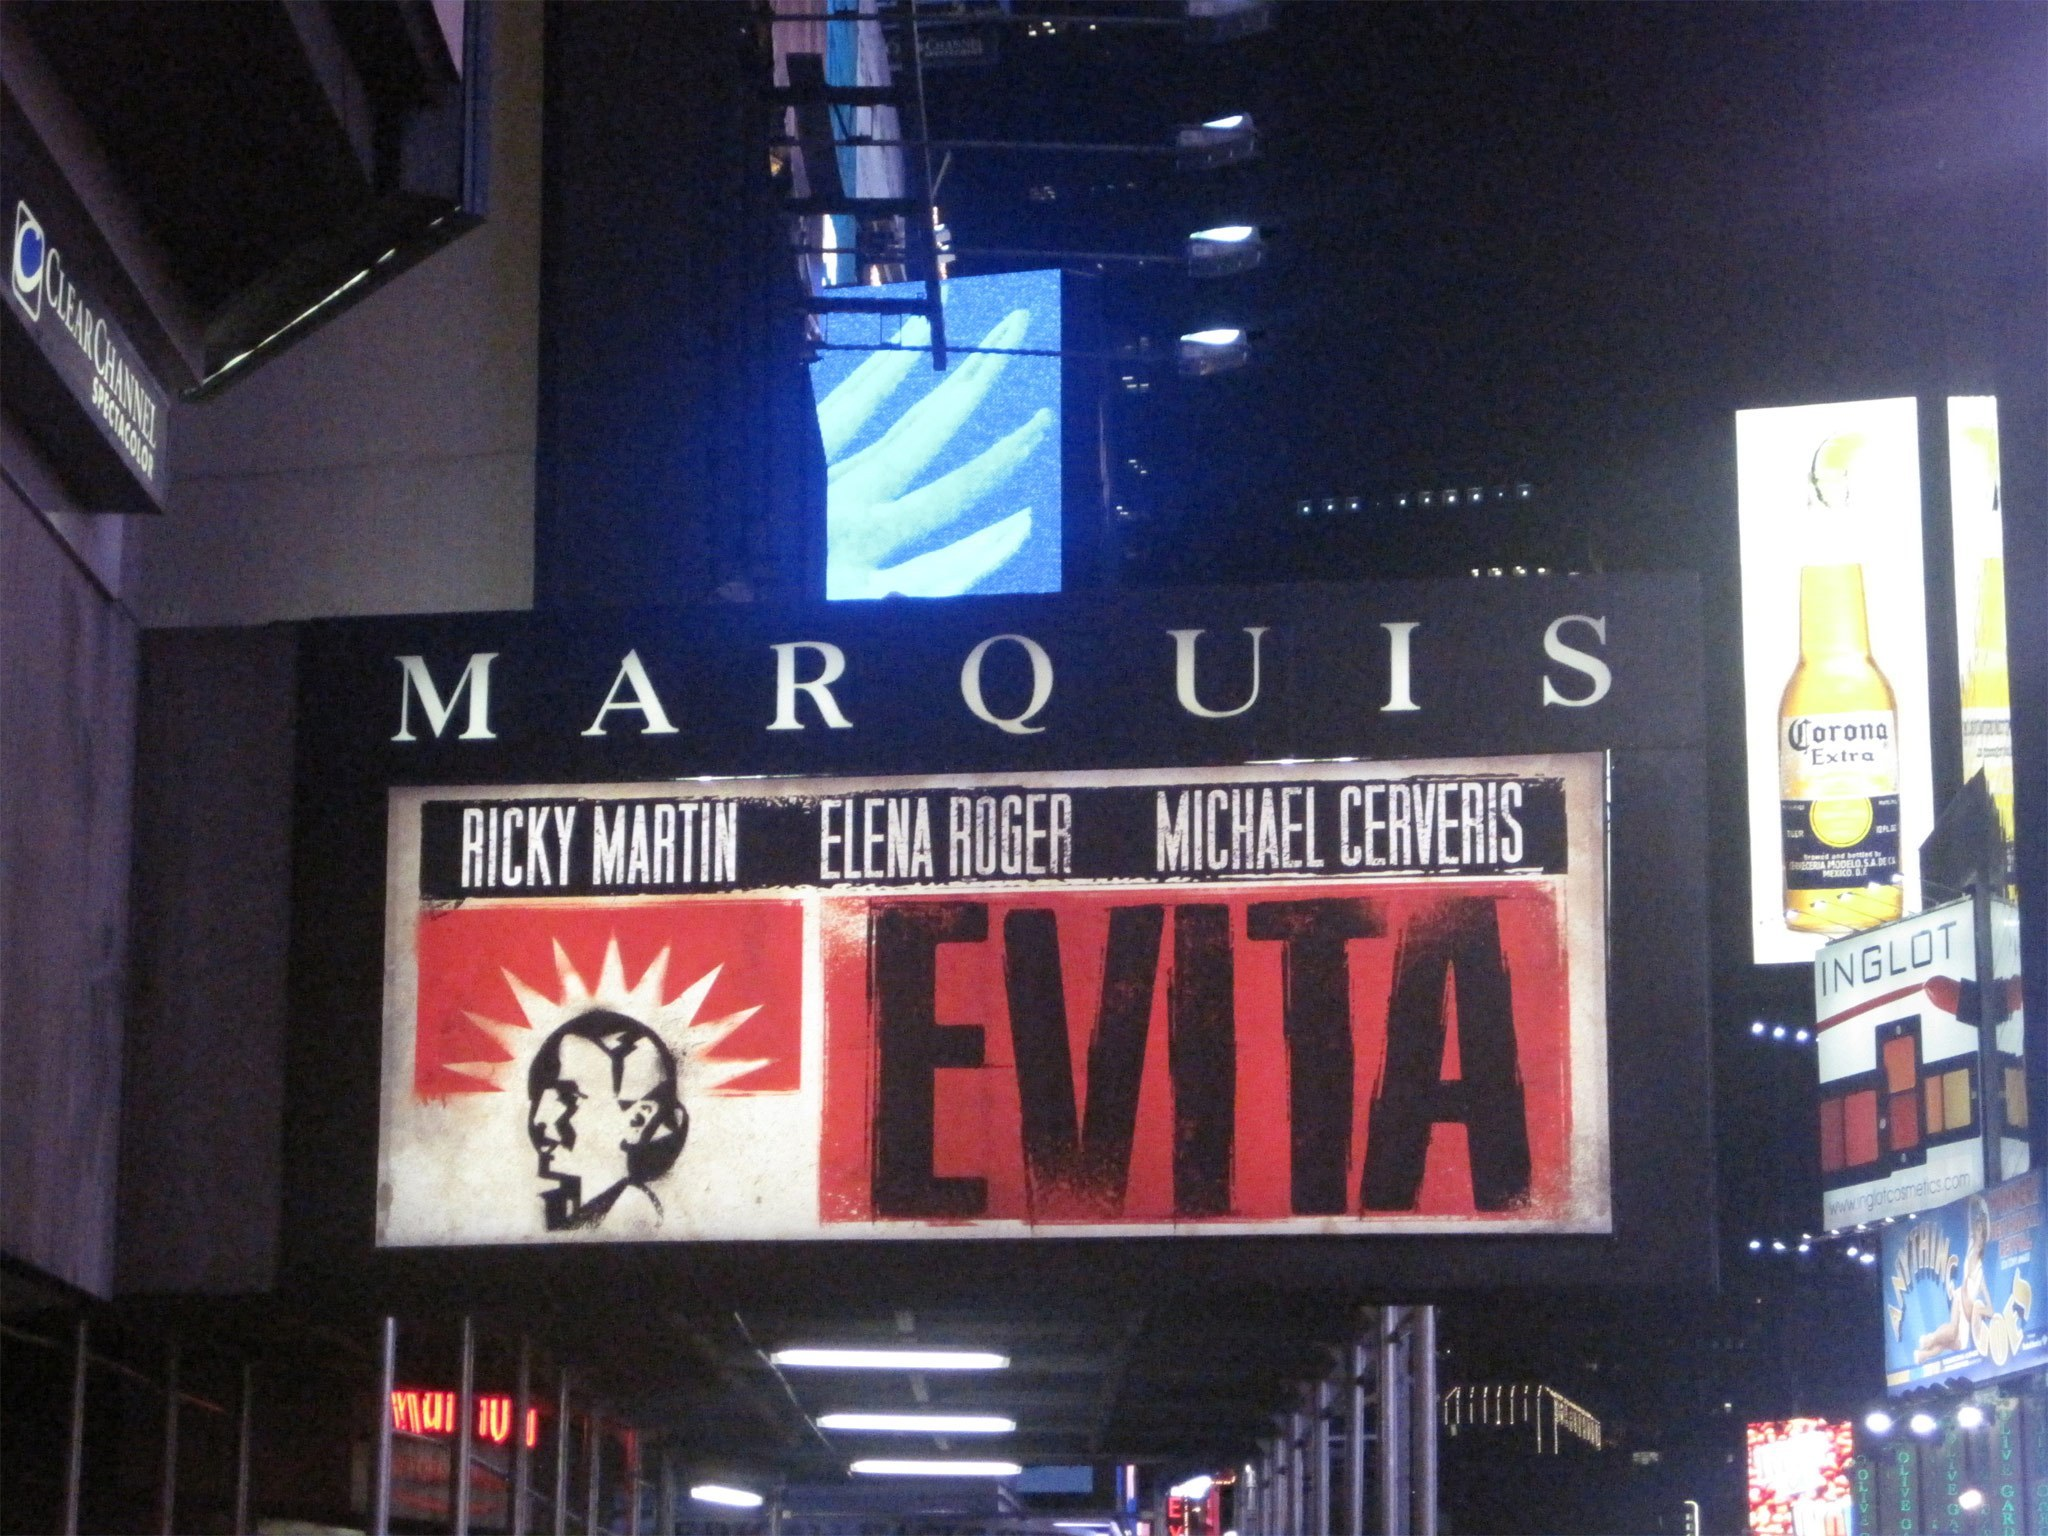 Evita marquee at the Marquis Theatre in NYC